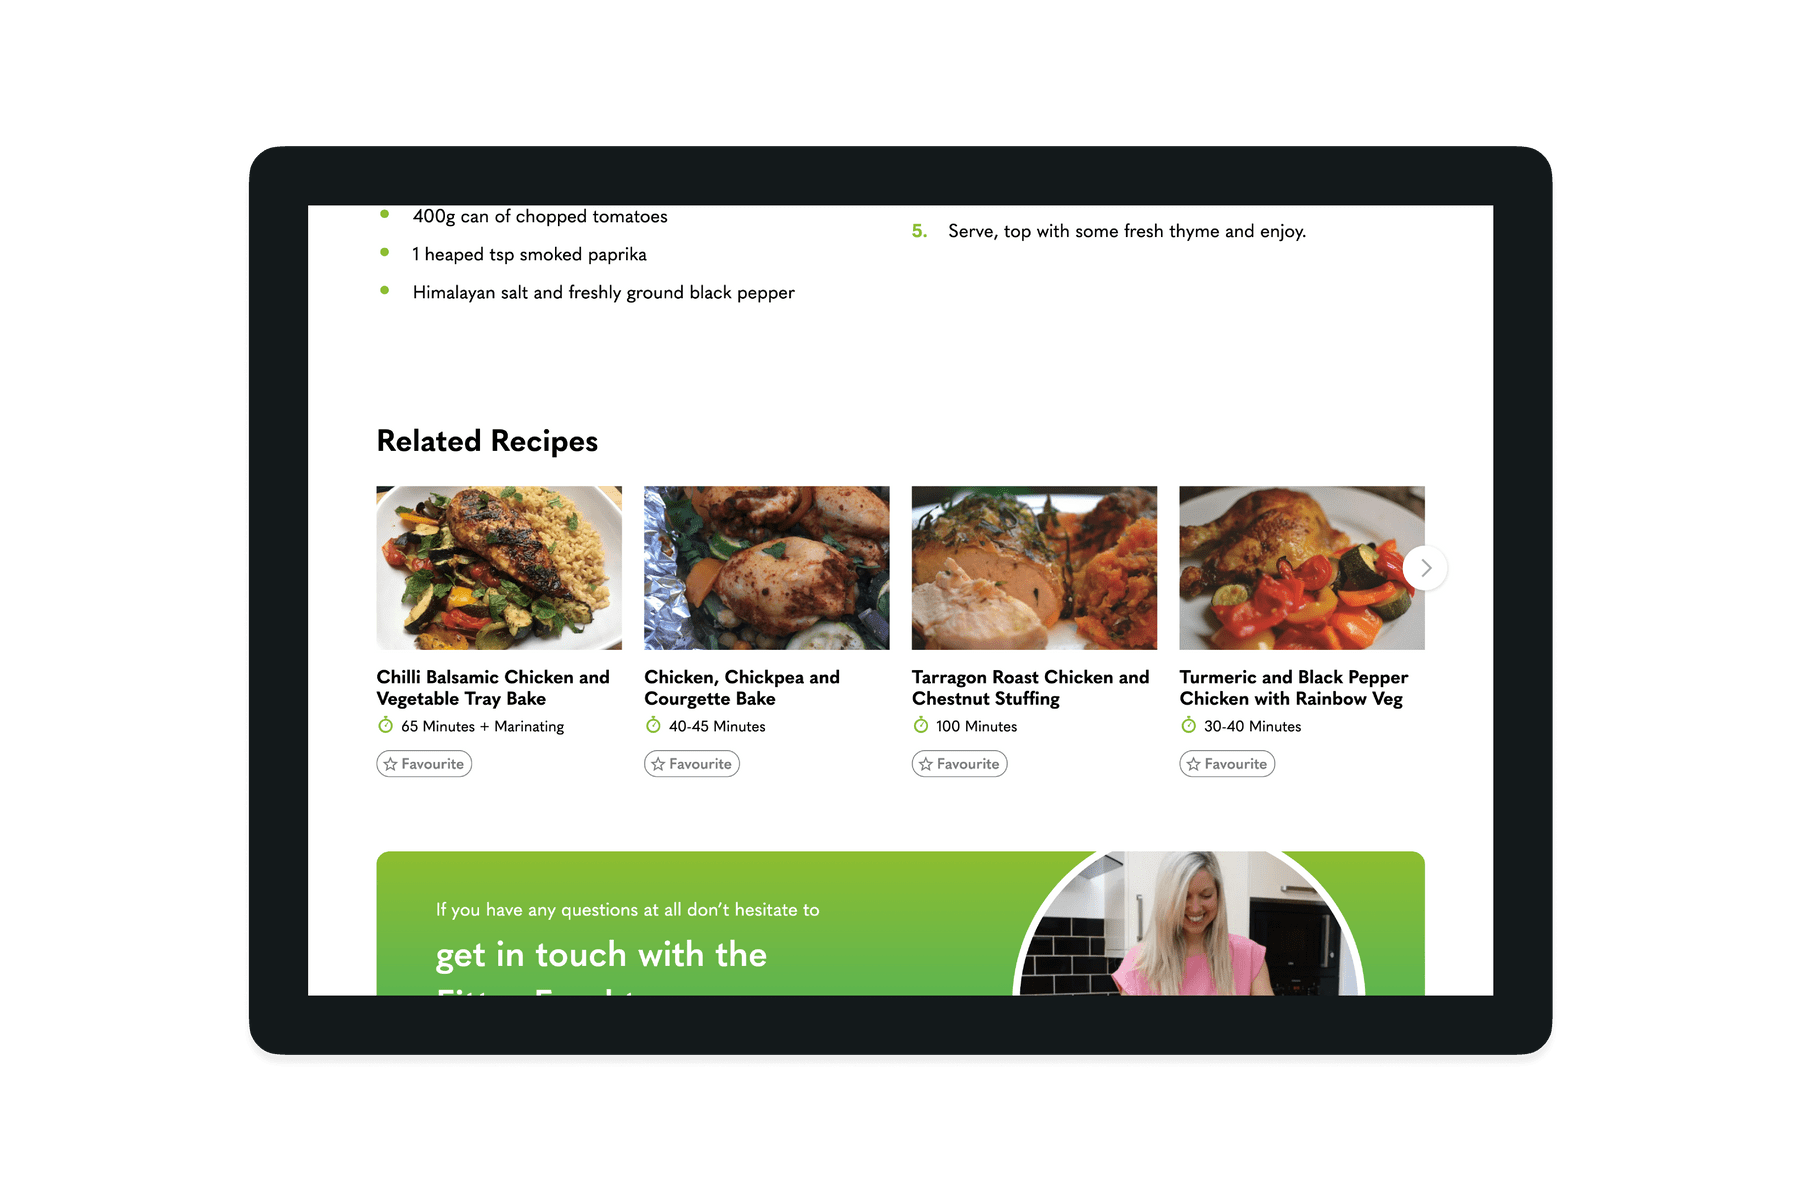 Tablet showing the related recipes on the Fitter 365 website